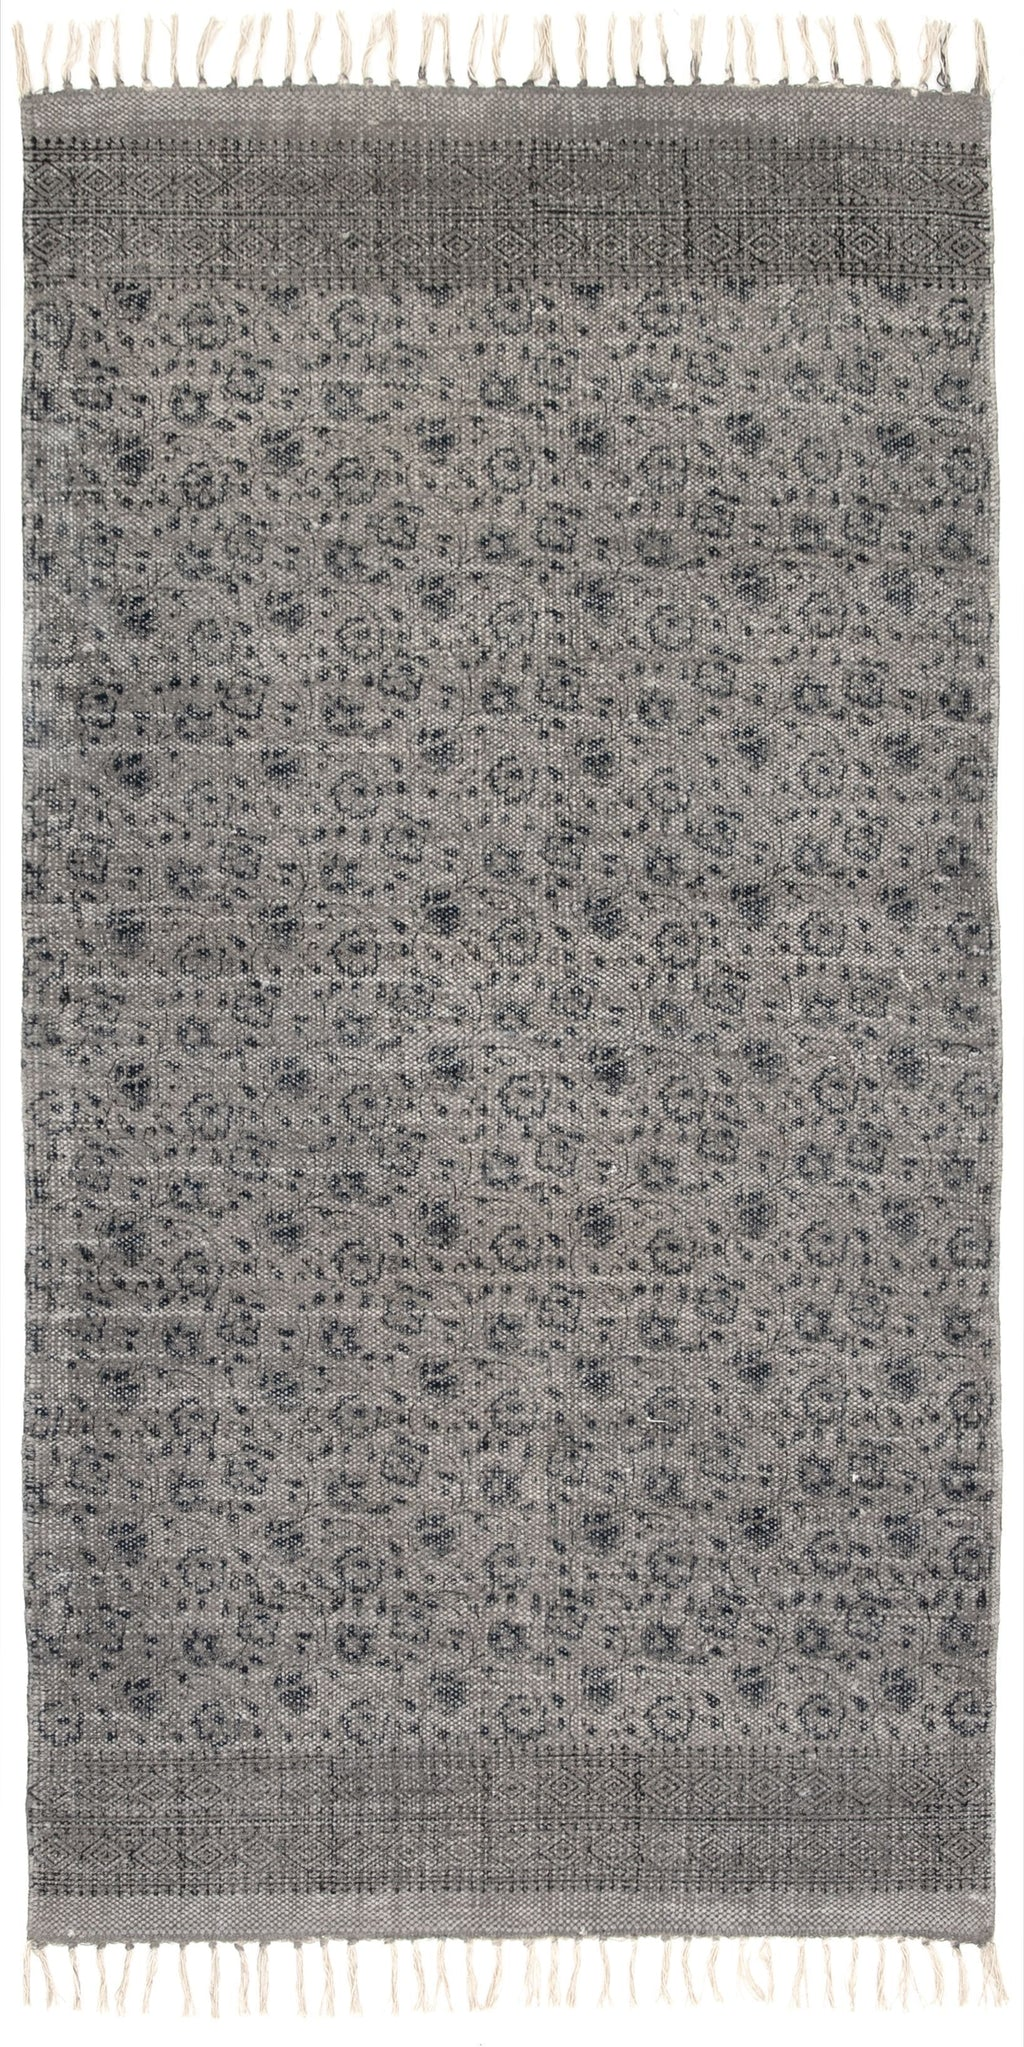 Flatweave Faded Print Runner